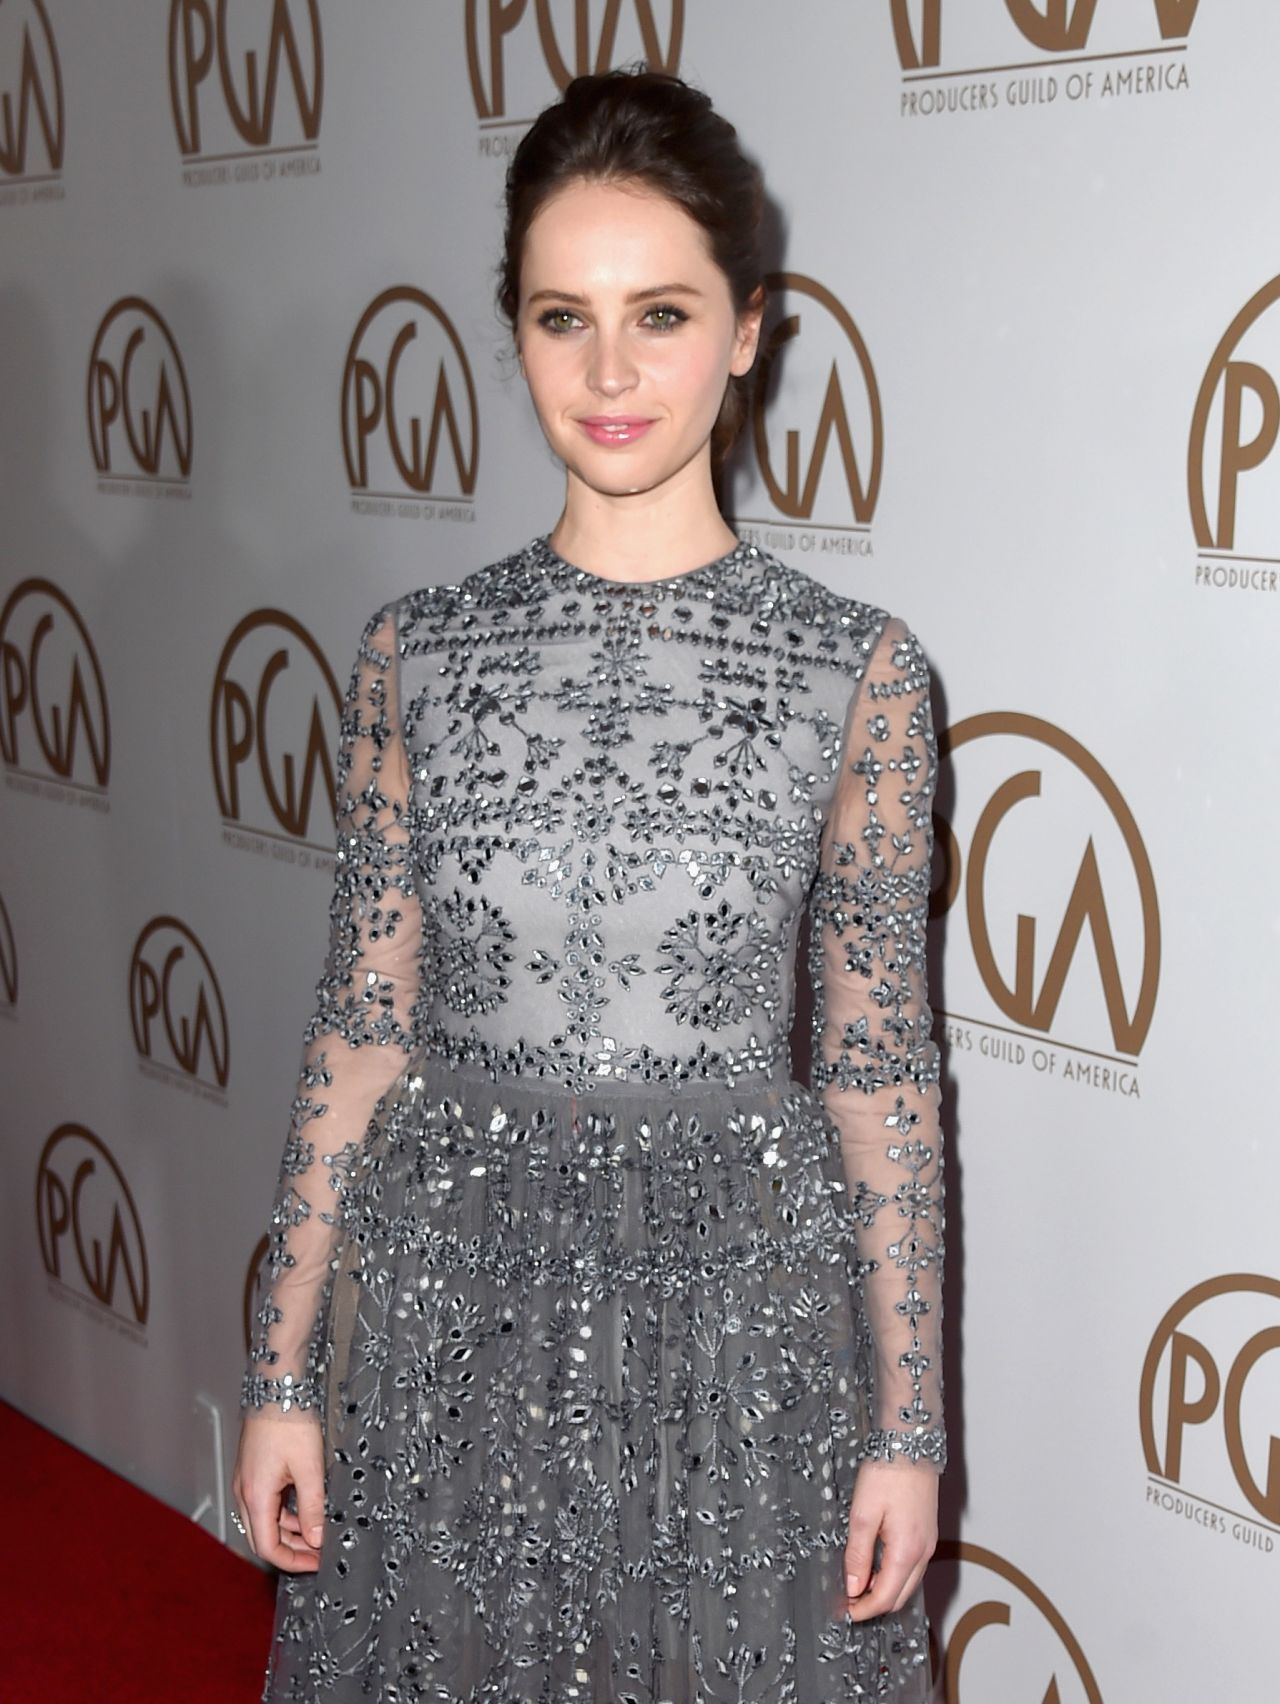 felicity-jones-2015-producers-guild-awards-in-los-angeles_7